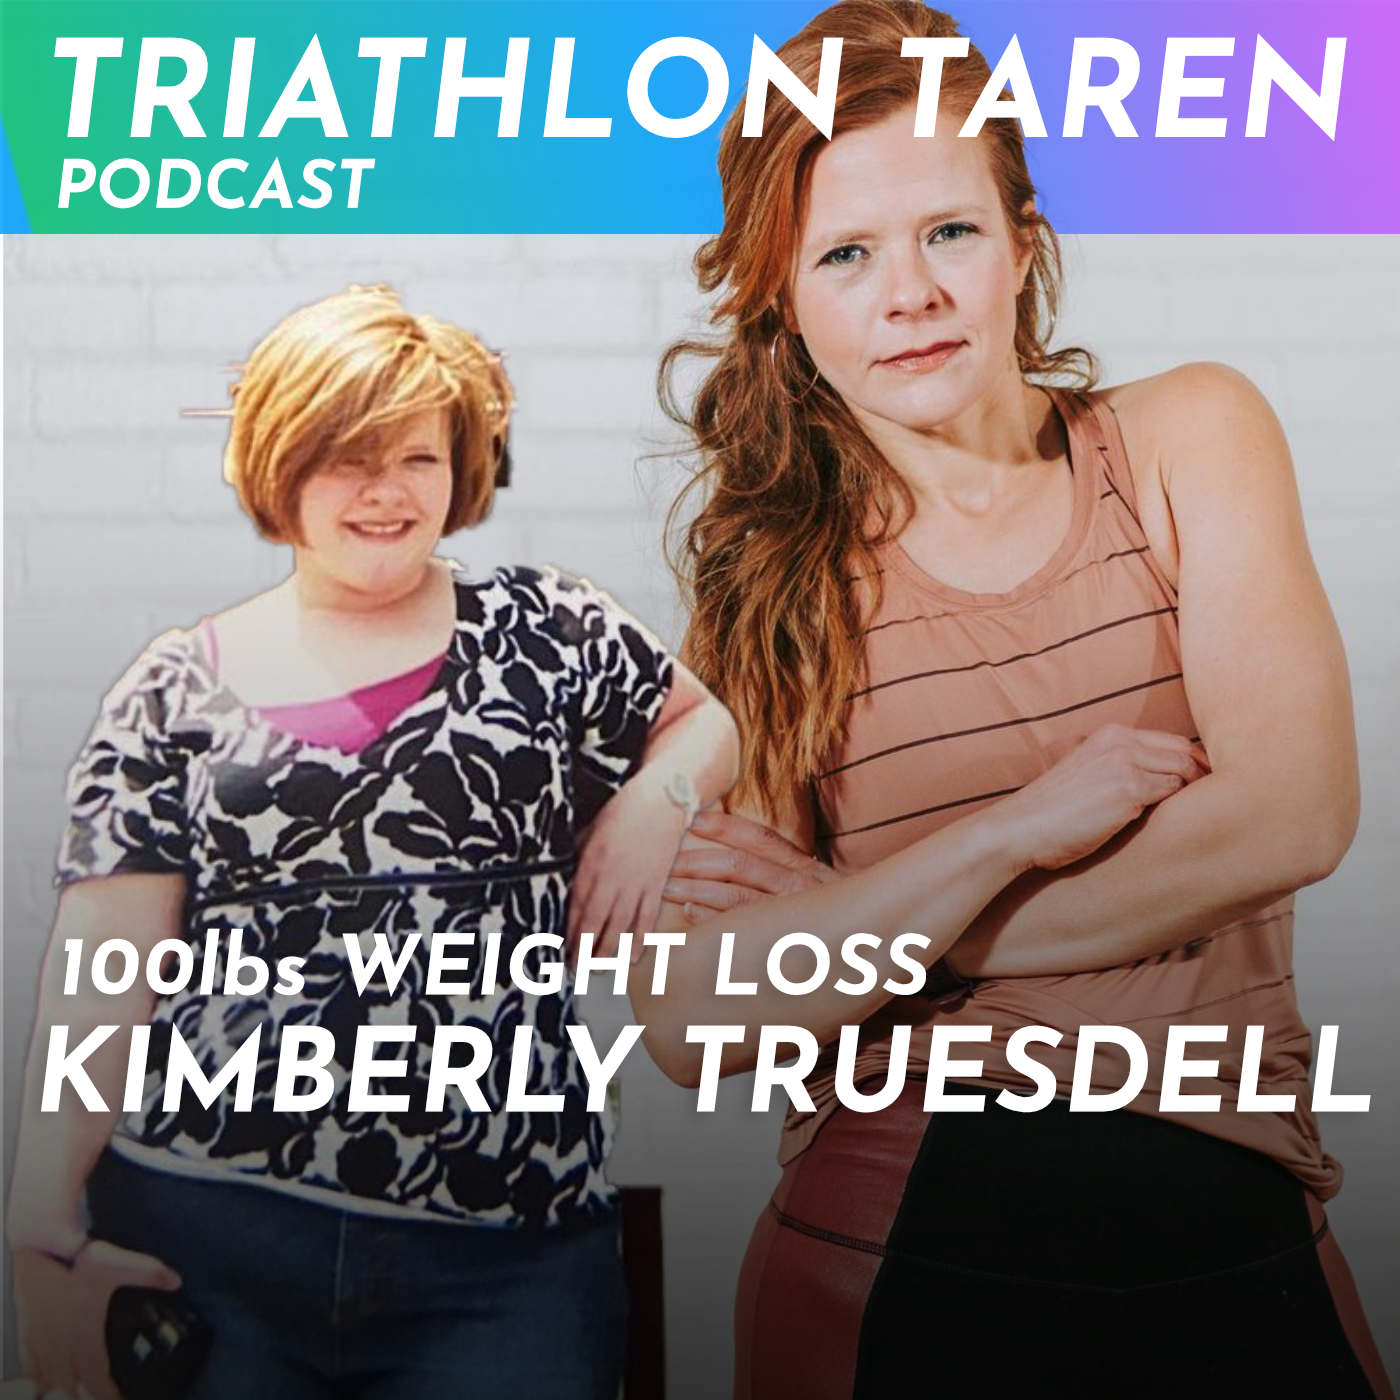 How to Lose 110lbs with Kimberly Truesdell